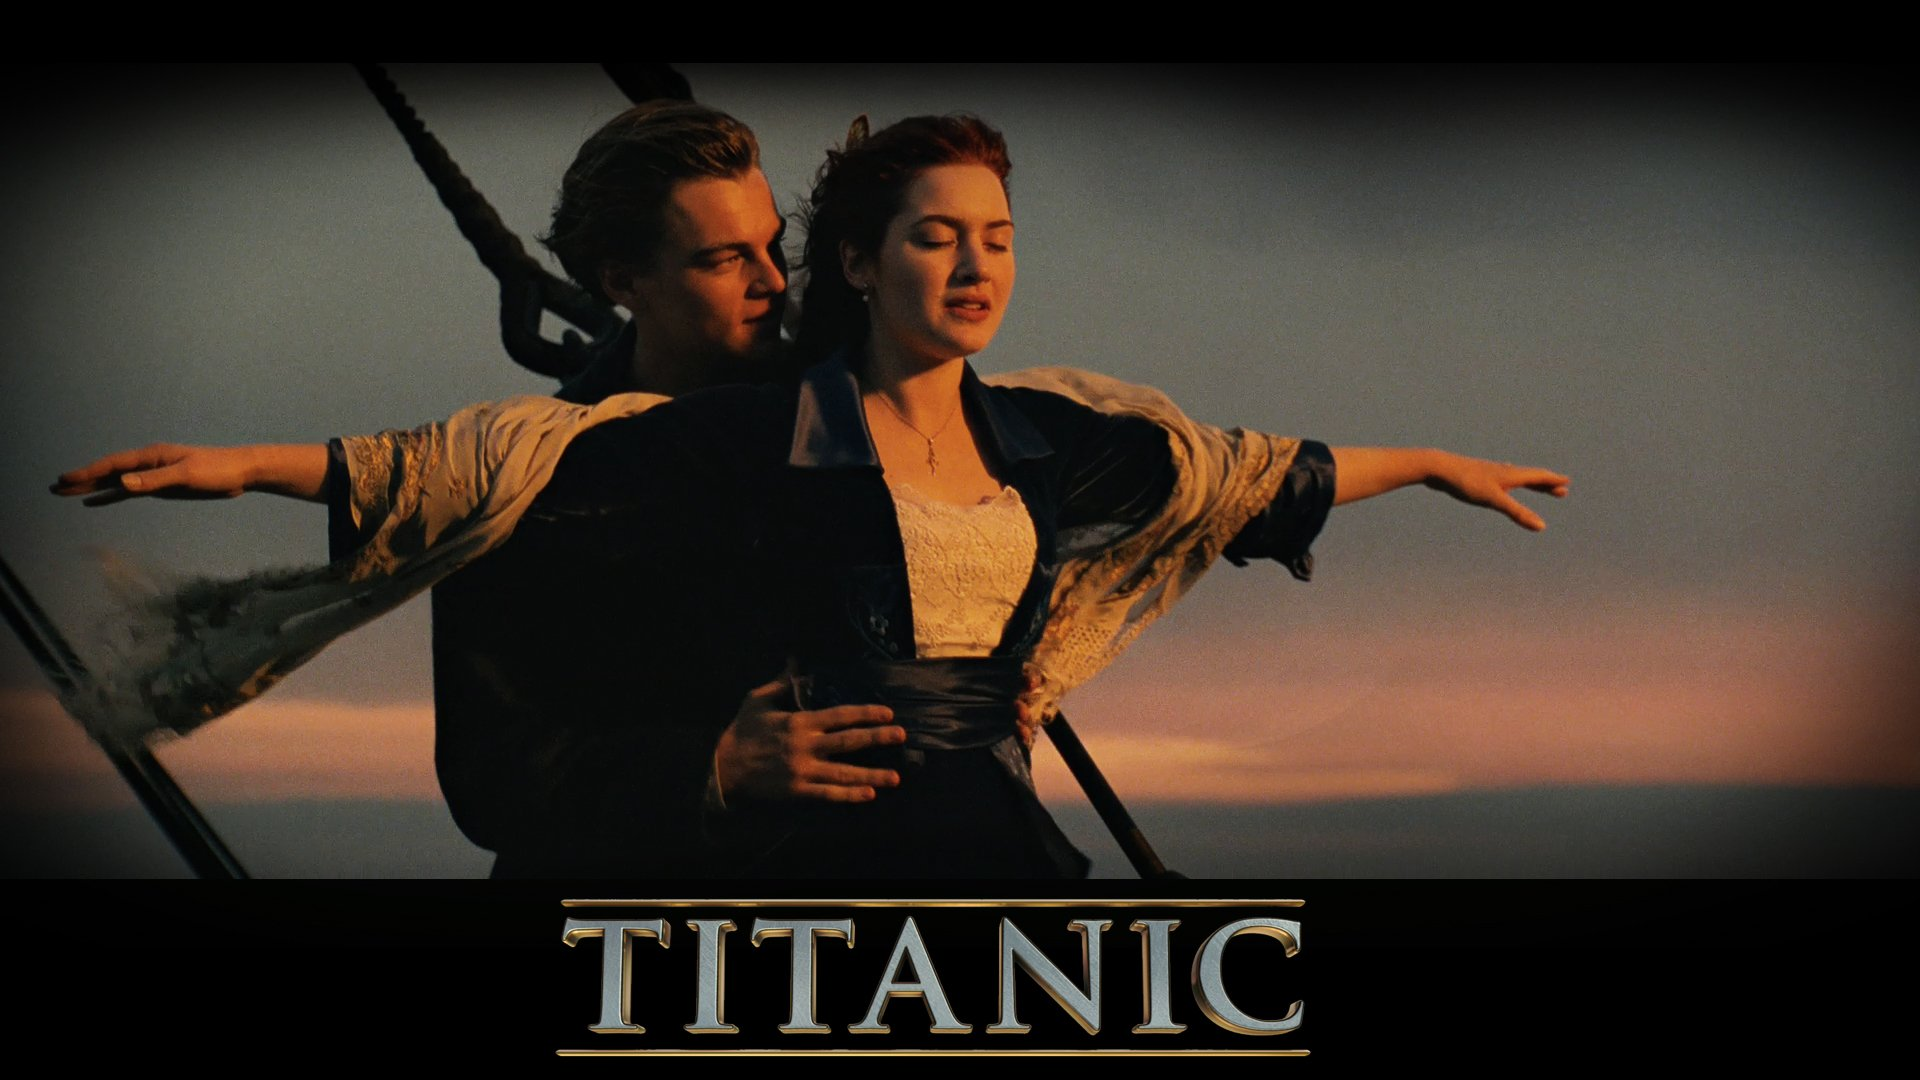 Titanic in 3D Wallpapers HD Wallpapers 1920x1080